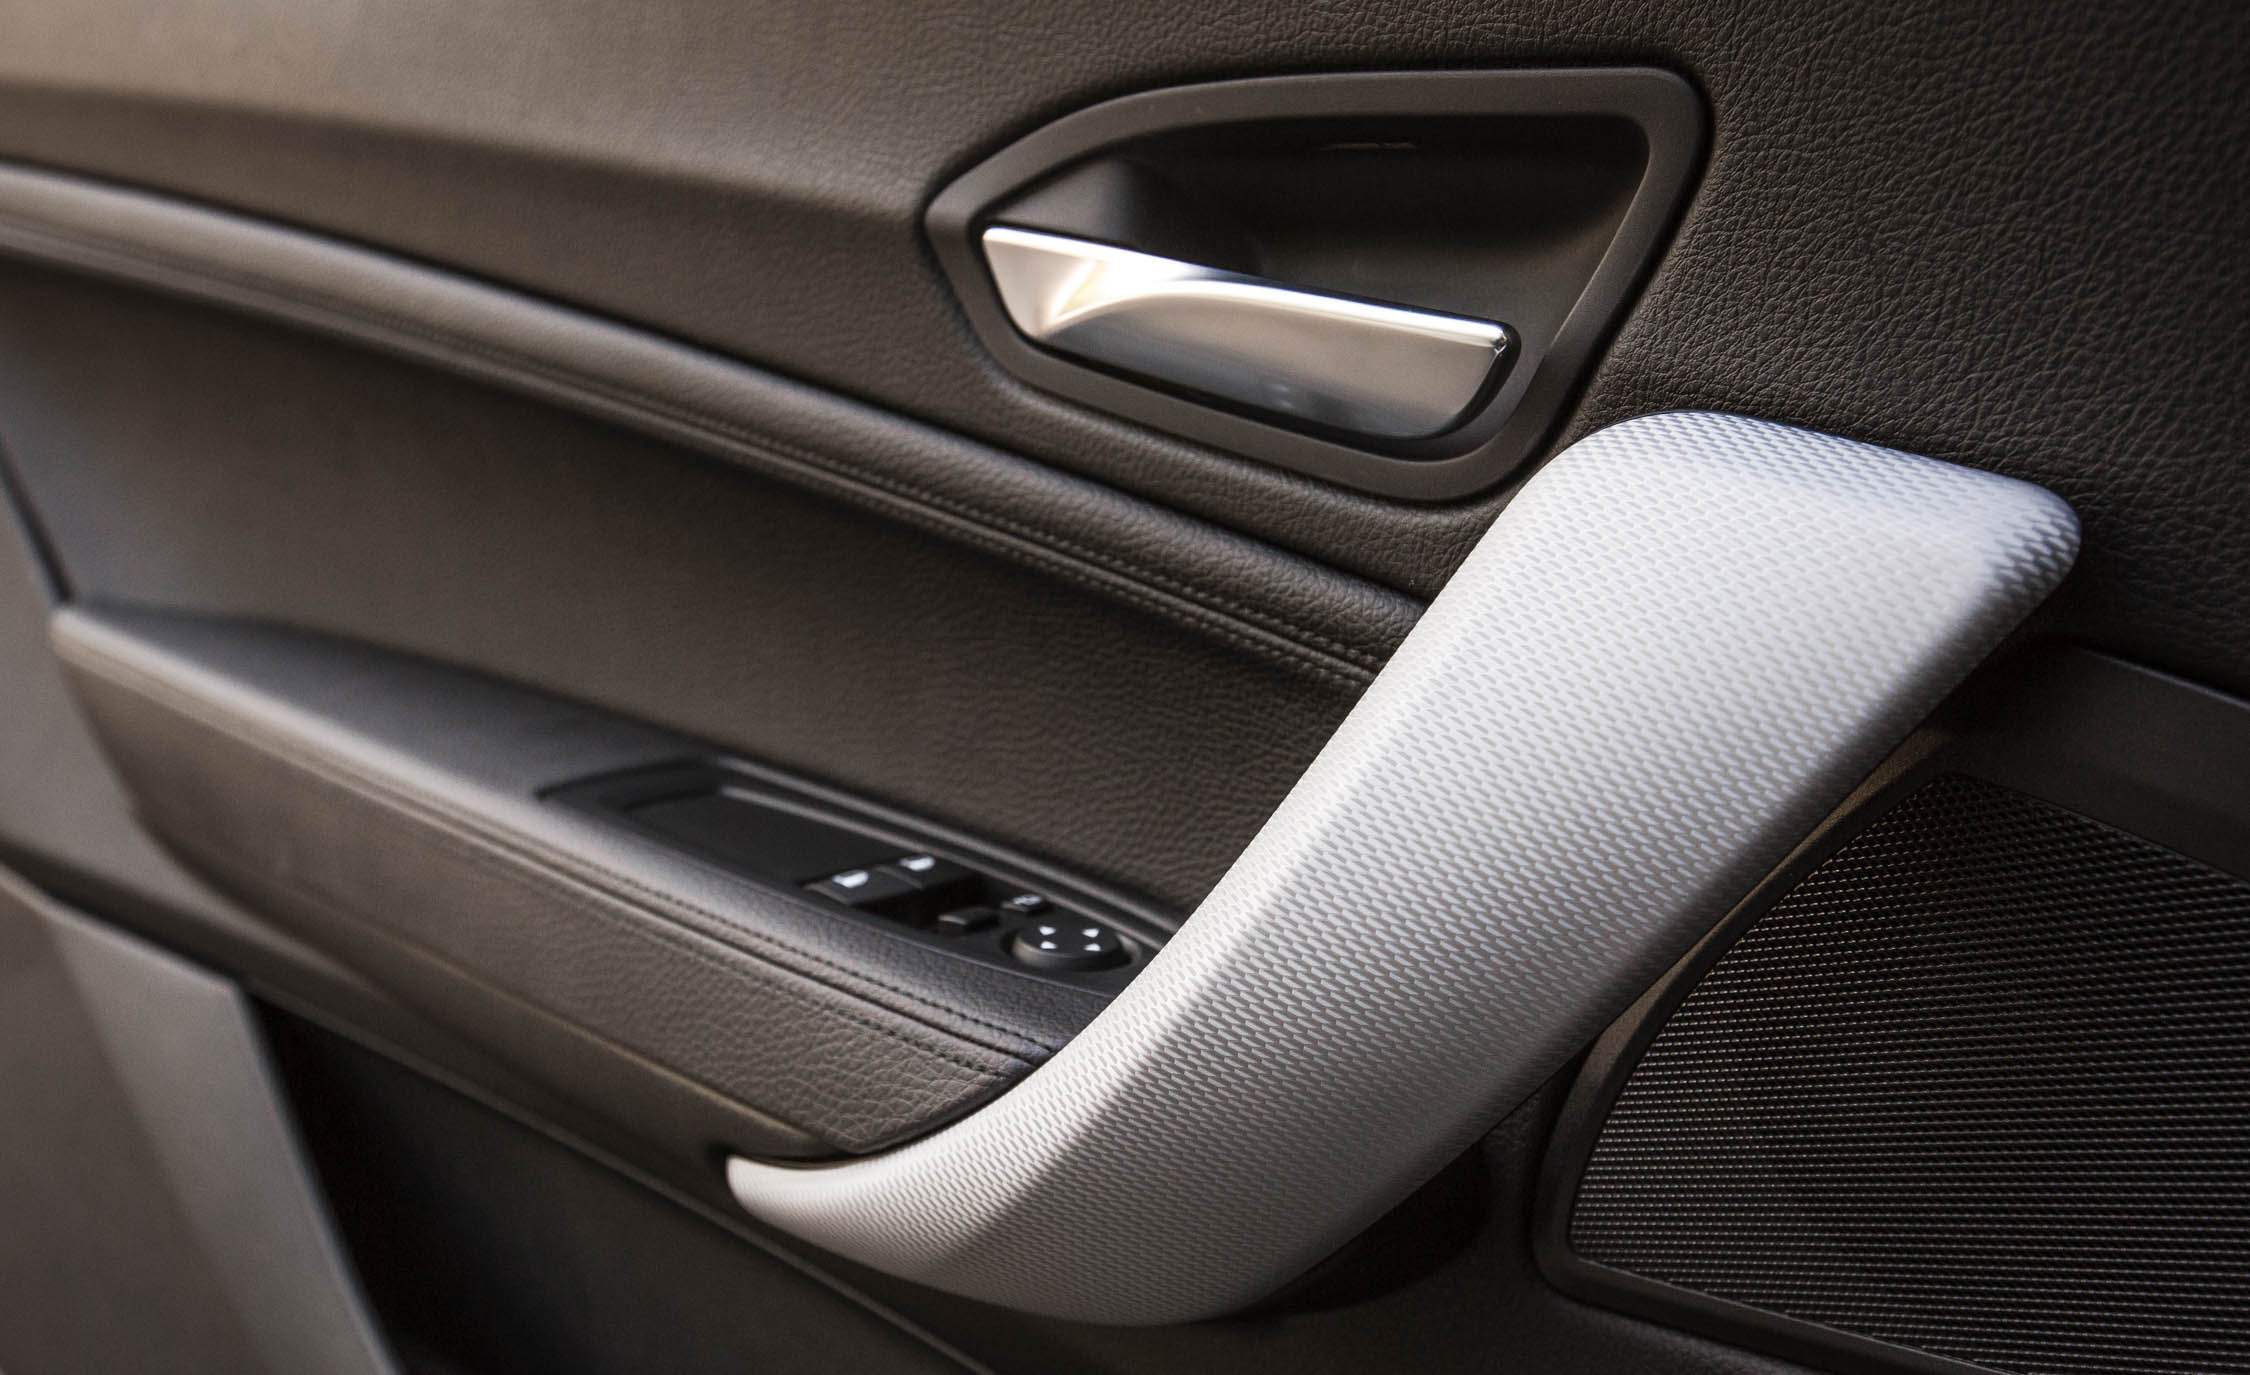 2017 BMW M240i Coupe Automatic Interior View Door Trim (Photo 32 of 36)